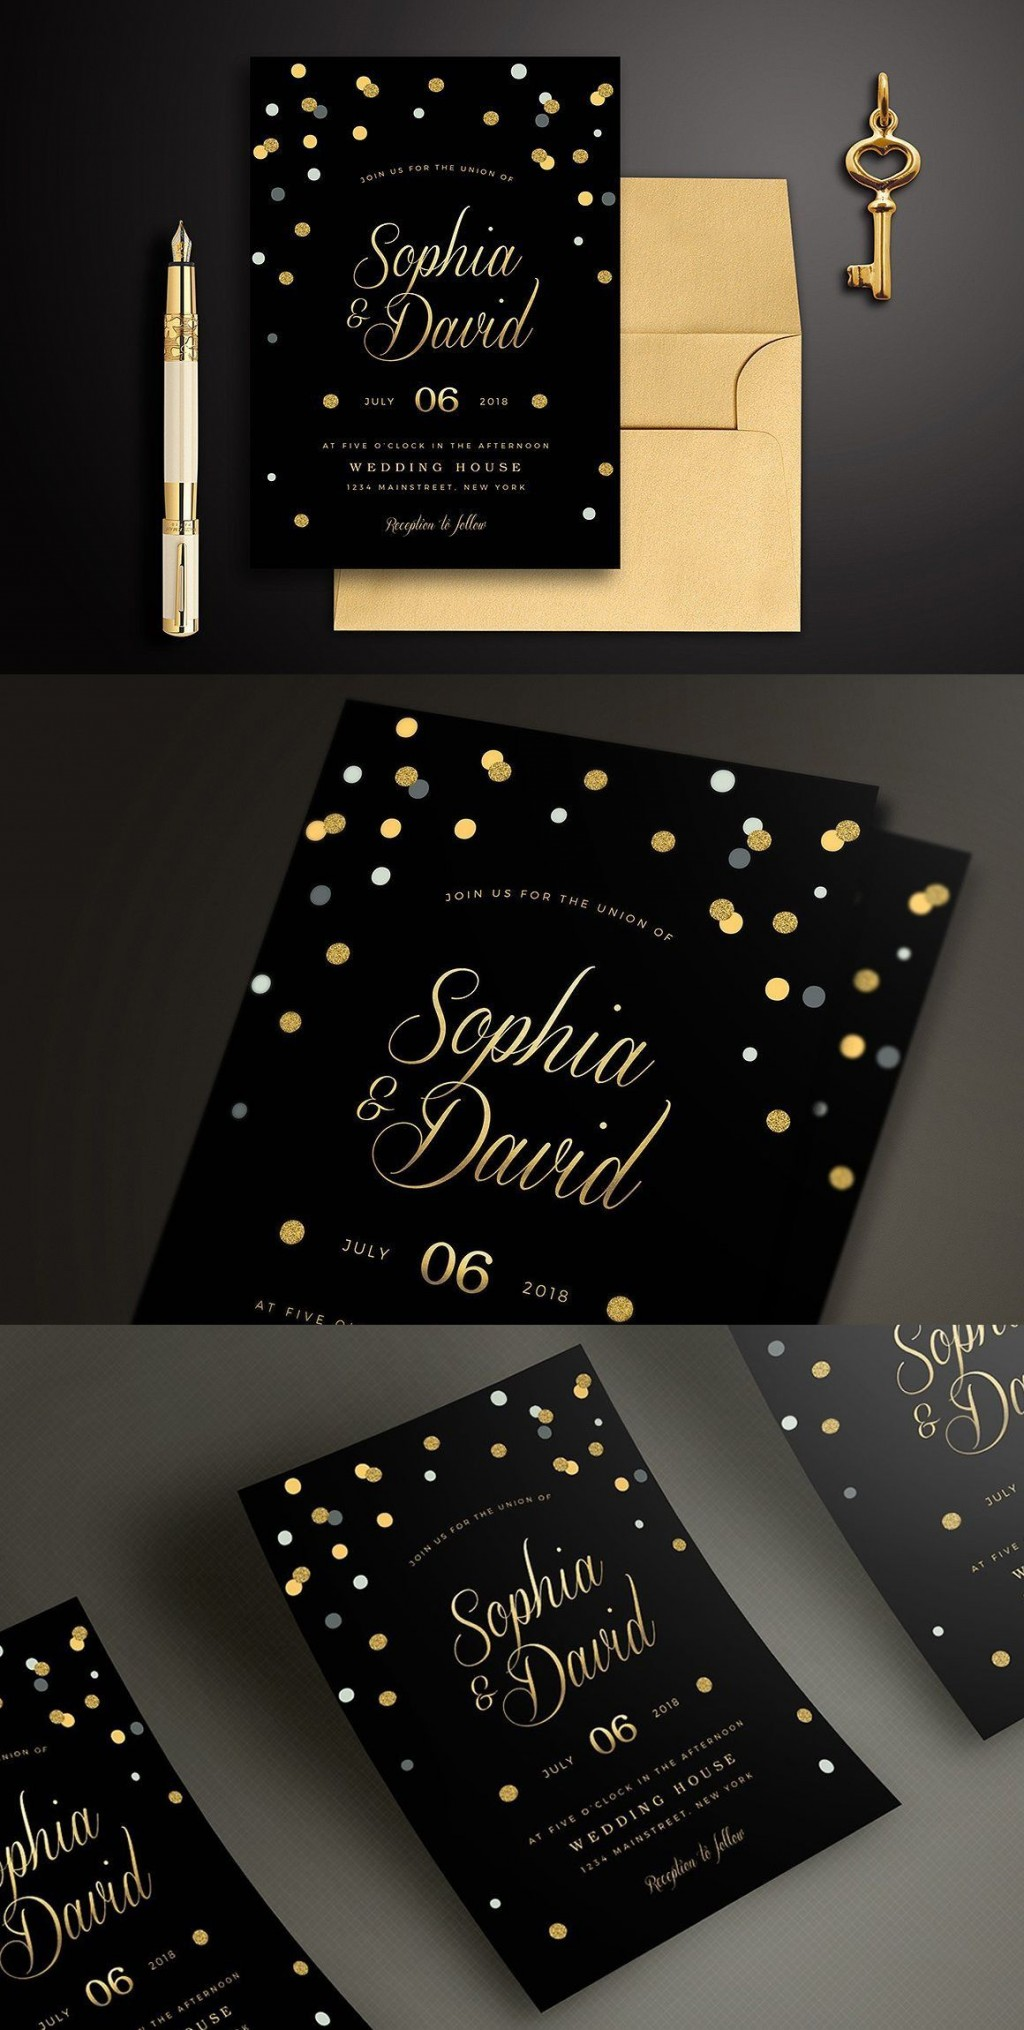 004 Archaicawful Black And Gold Invitation Template Highest Clarity  Design White Free PrintableLarge